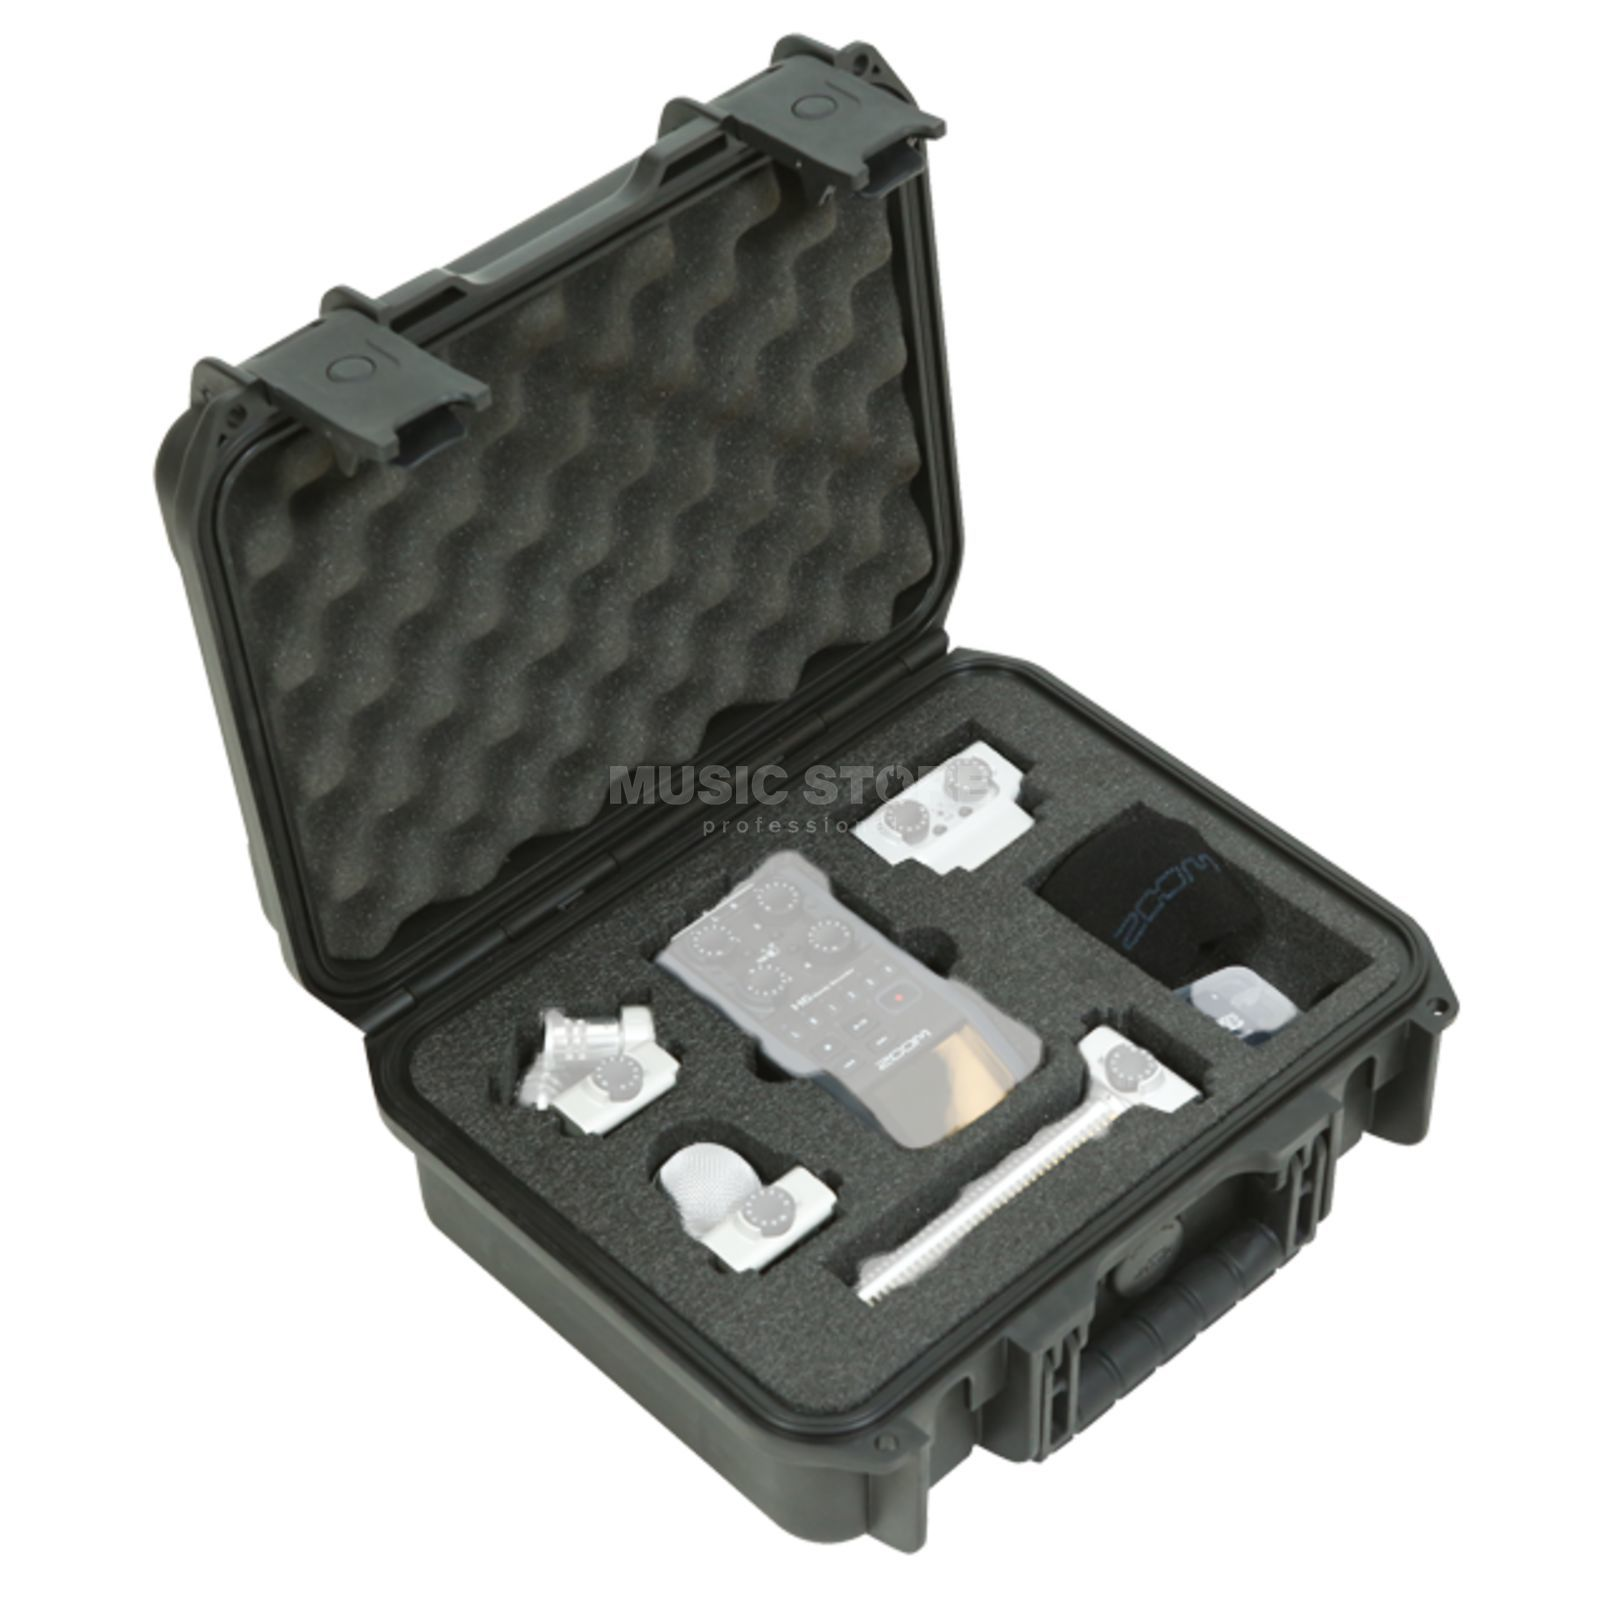 SKB iSeries Case Zoom H6 Broadcast Recorder Kit Produktbillede